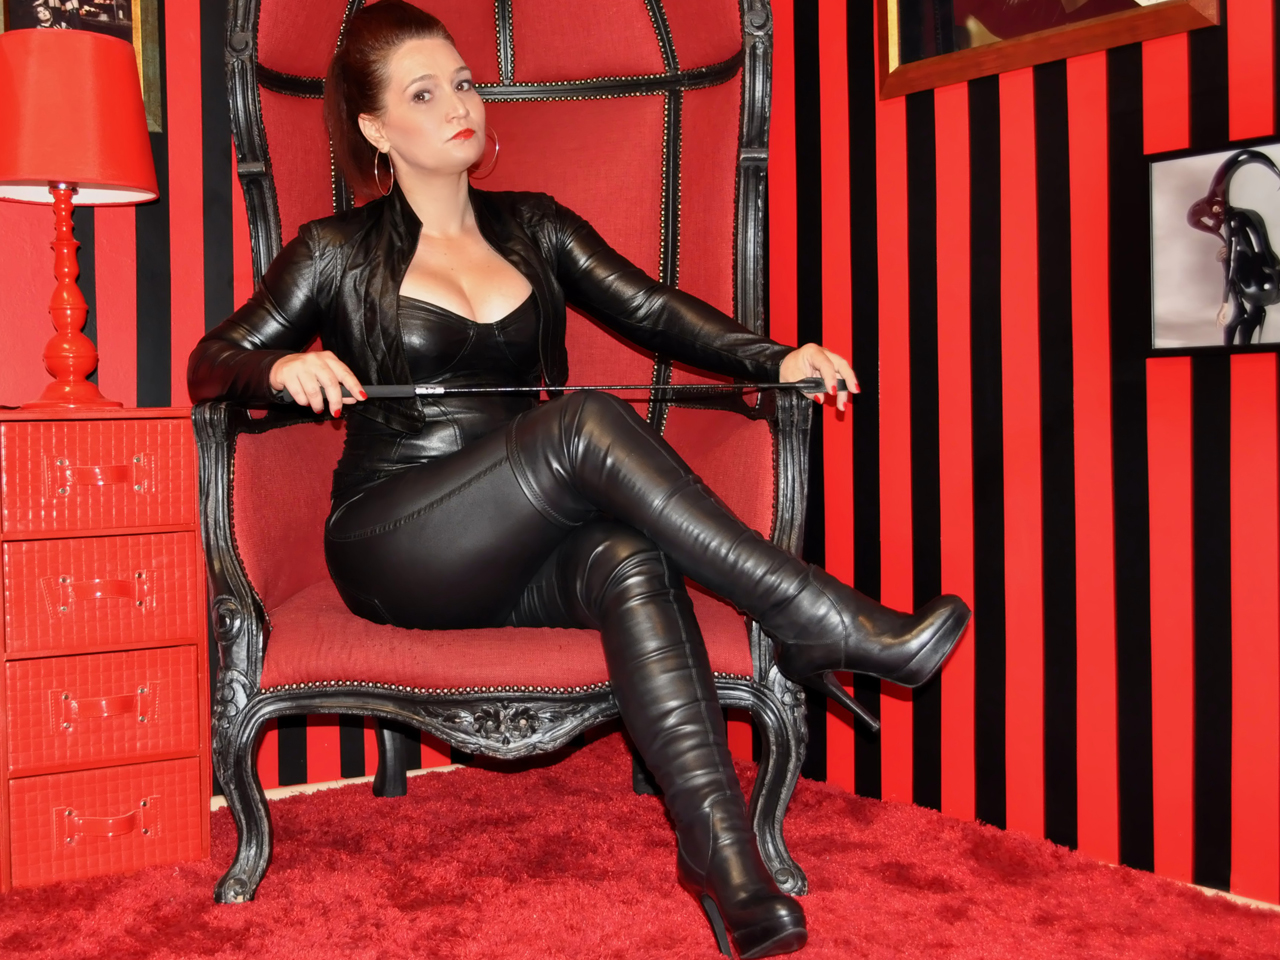 Bdsm toys for dominant women to dominate your submissive male